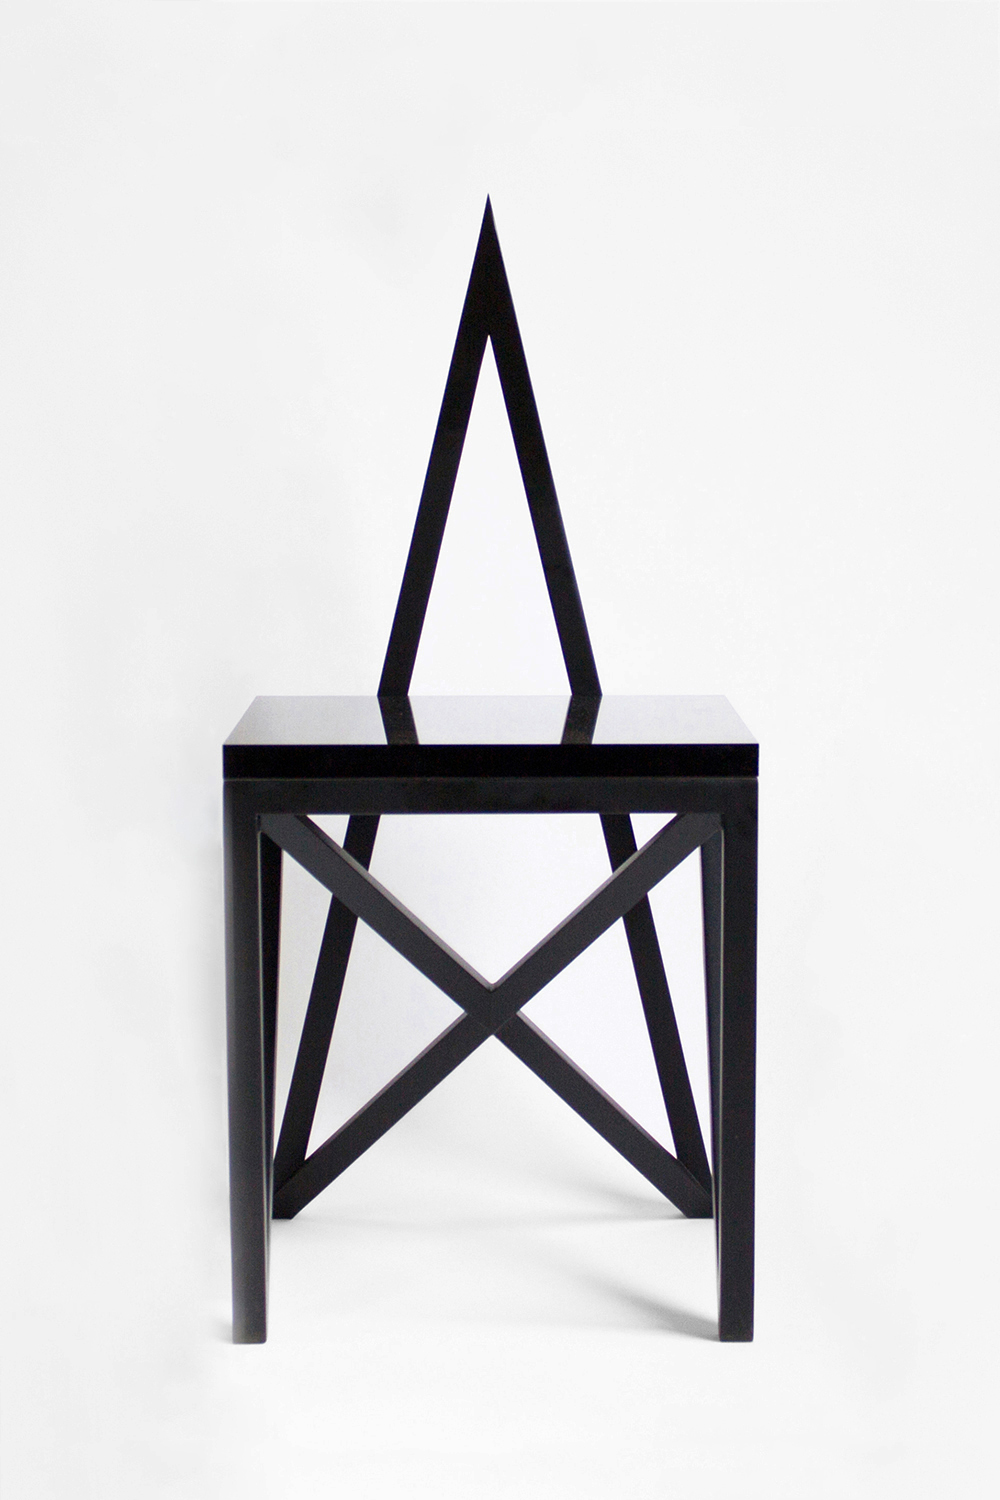 PAGAN CHAIR, 2014 BLACK POWDER COATED STEEL WITH LUCITE SEAT  PDF  -  INQUIRE  +  MORE